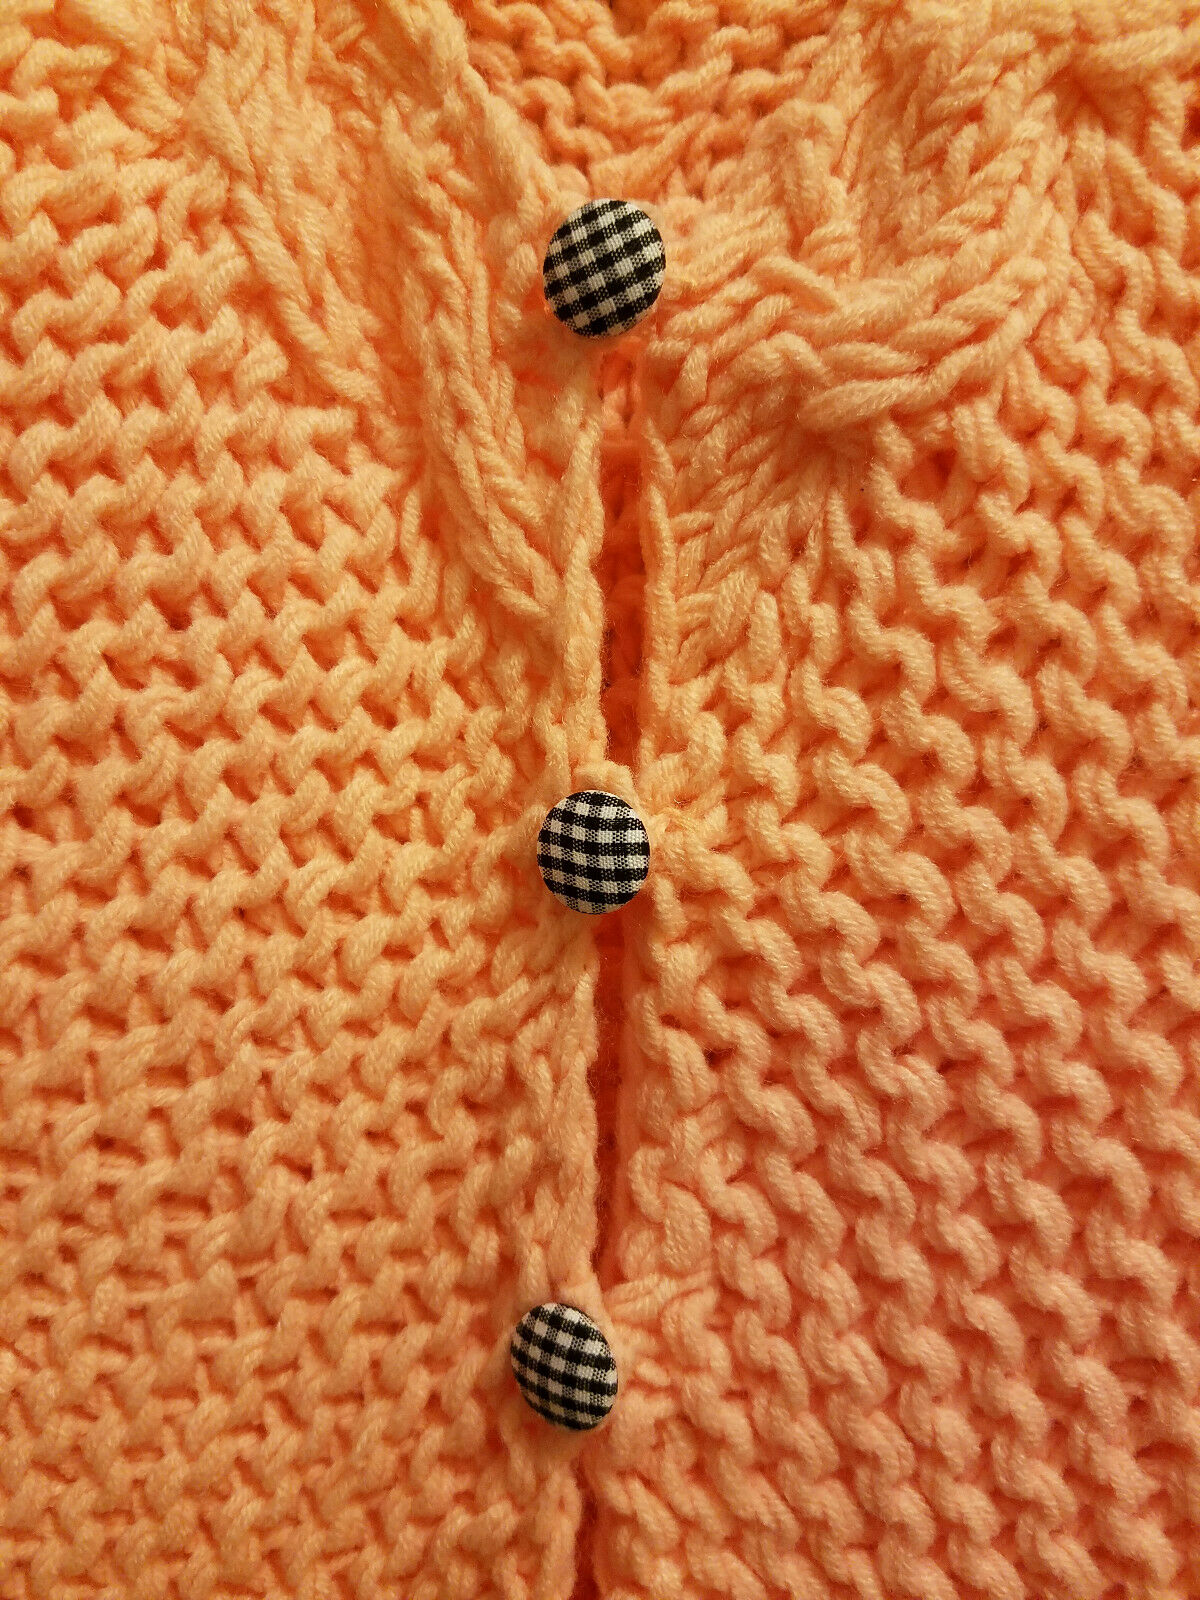 Free People People People Cardigan with accent buttons, Pink, Size M, NWOT 9c0262